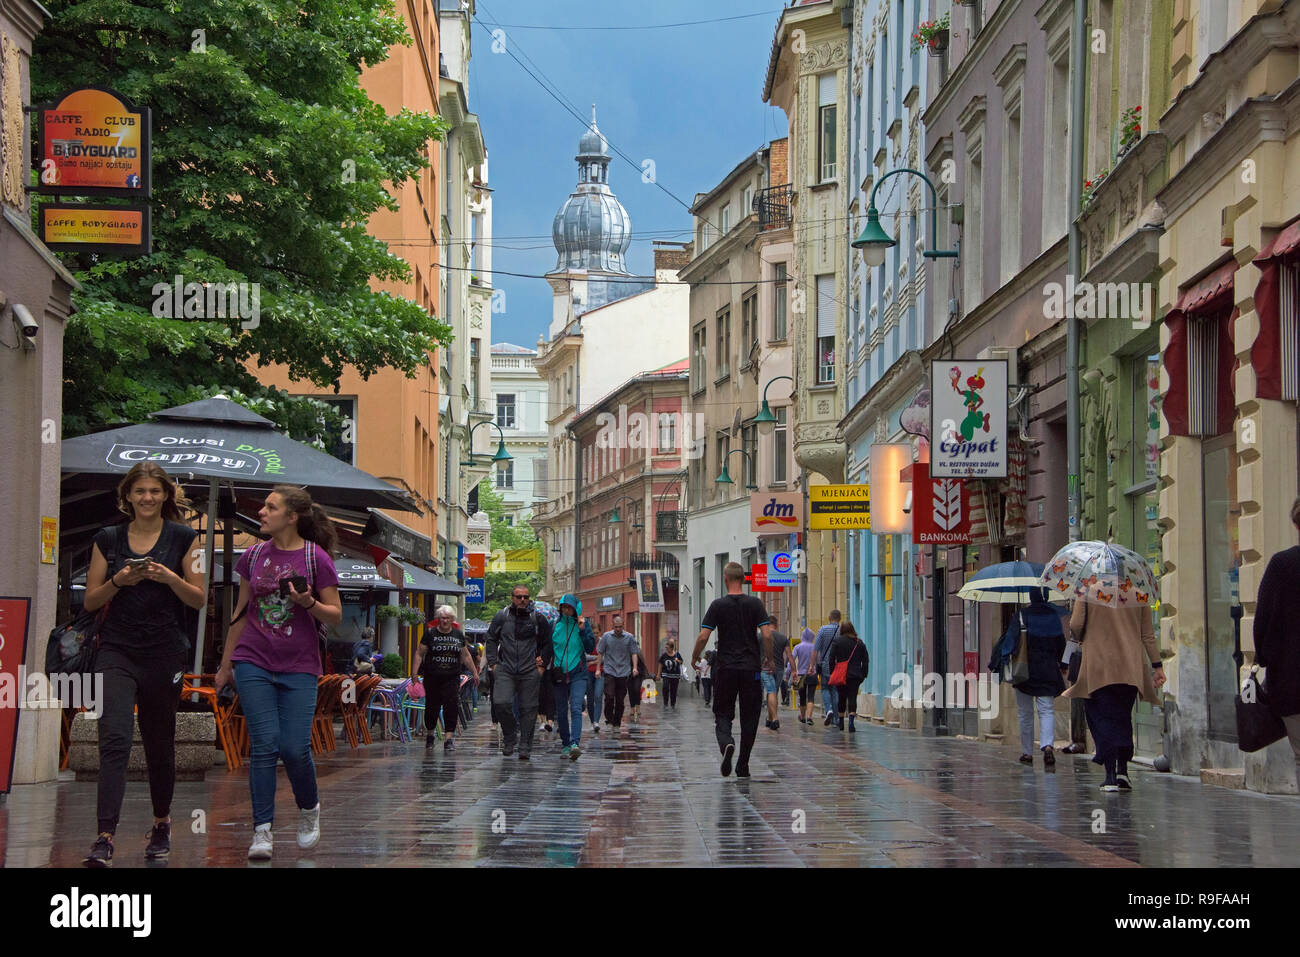 Street view in the old town, Sarajevo, Bosnia and Herzegovina - Stock Image